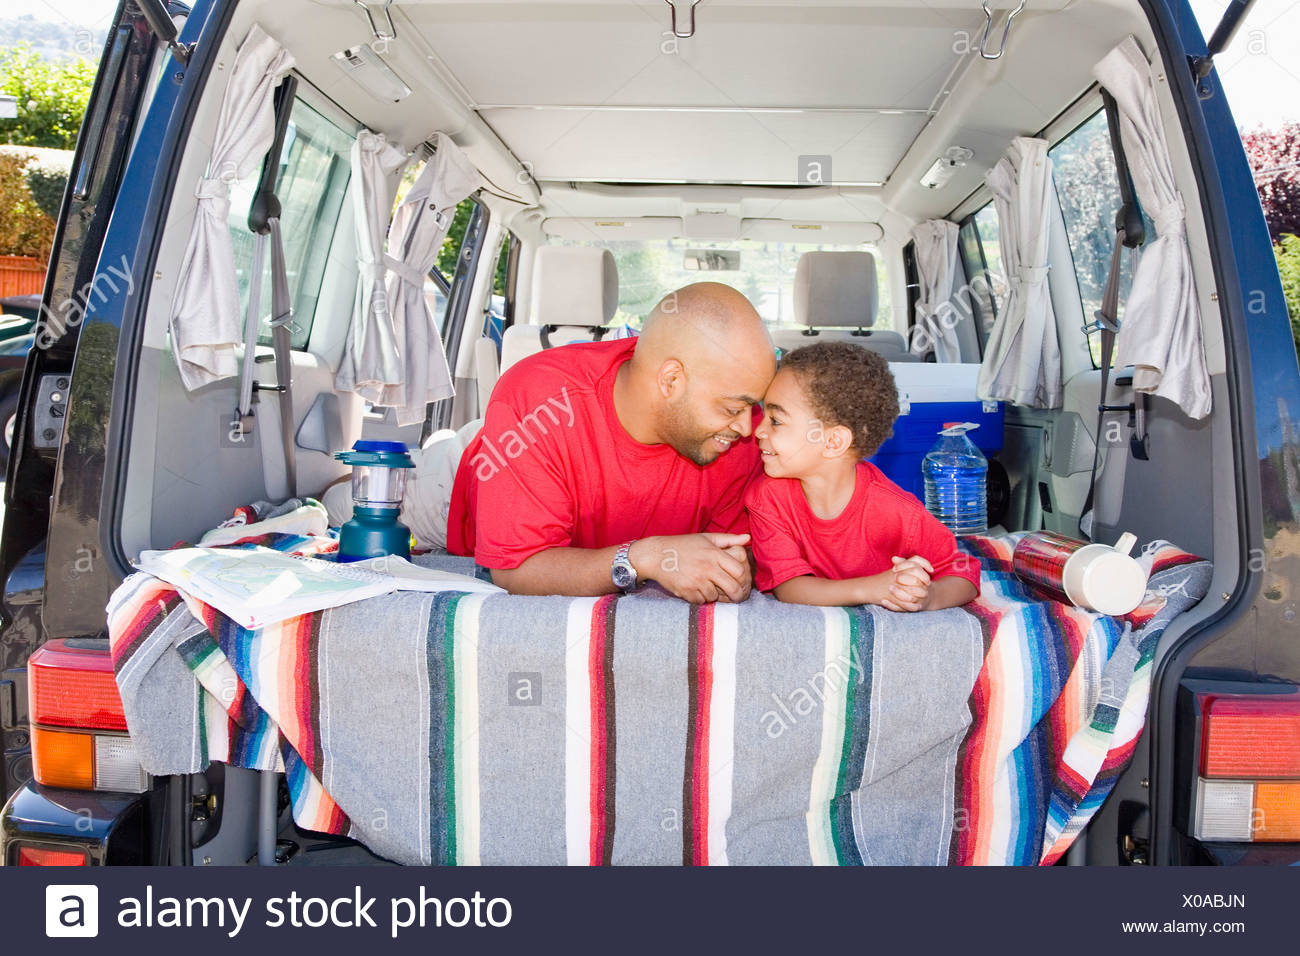 Father and son sitting in trunk of car with camping gear Stock Photo